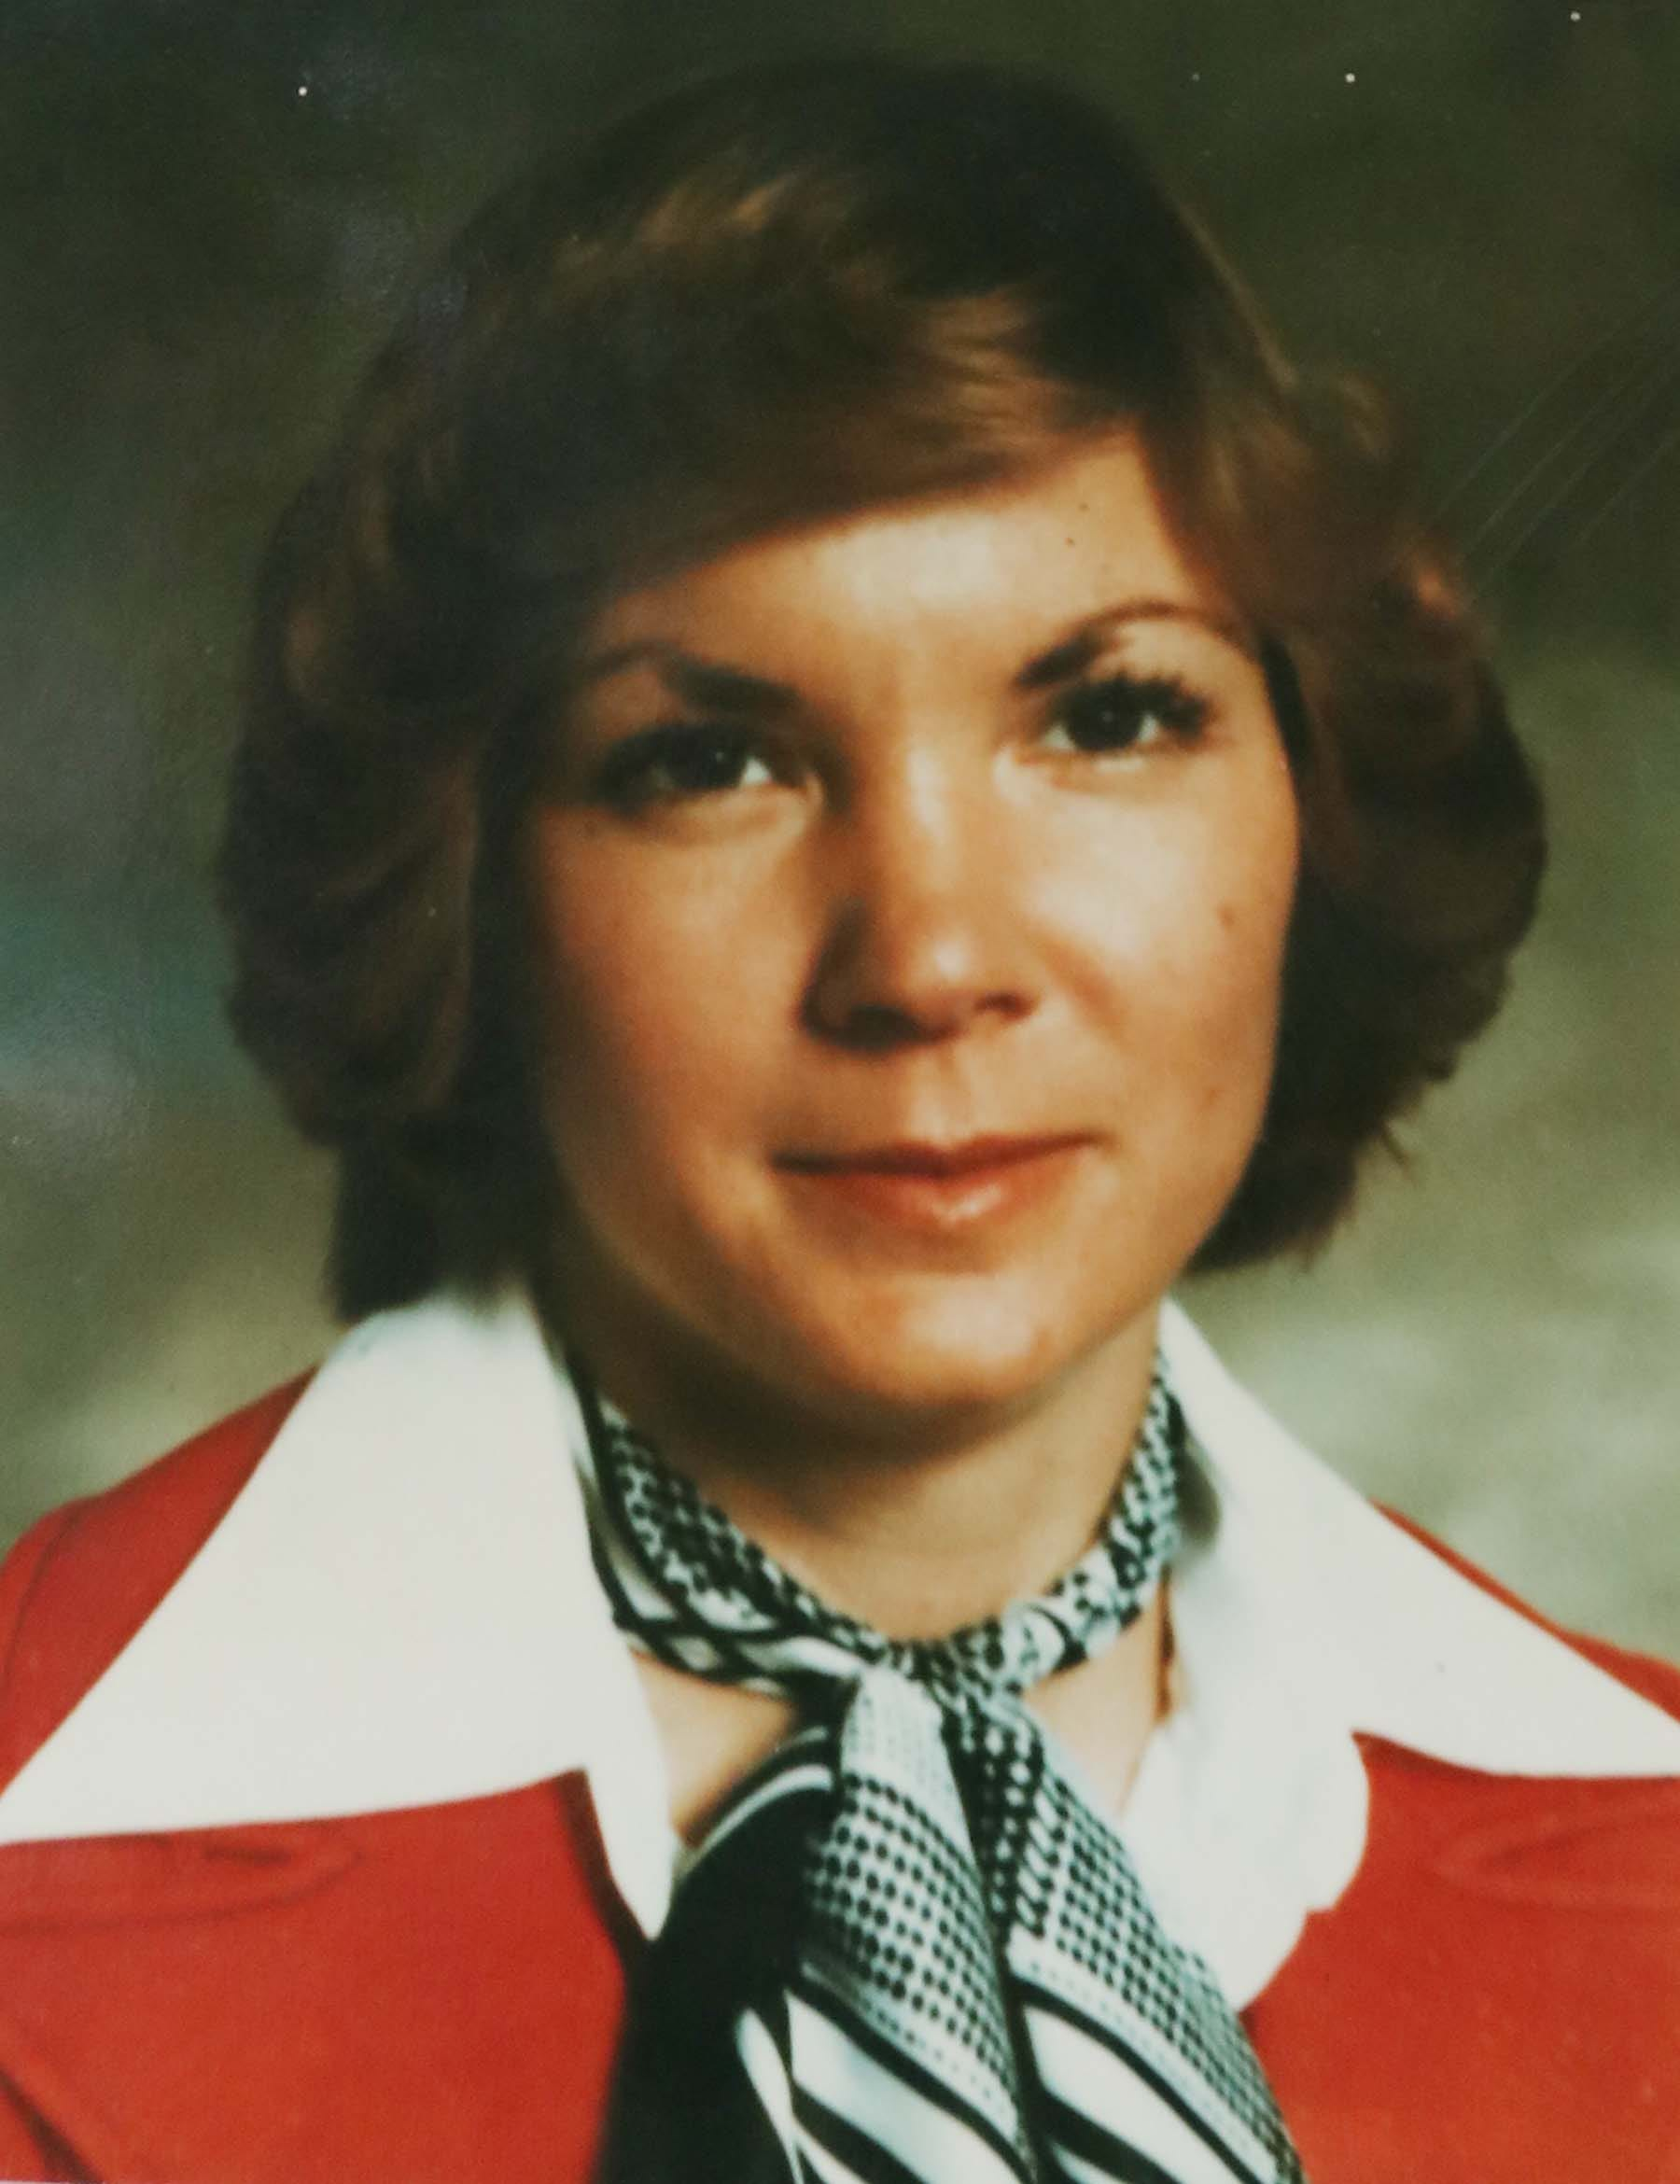 Akron school teacher Leslie Barker, 28, was murdered in 1978 and her death remains unsolved.